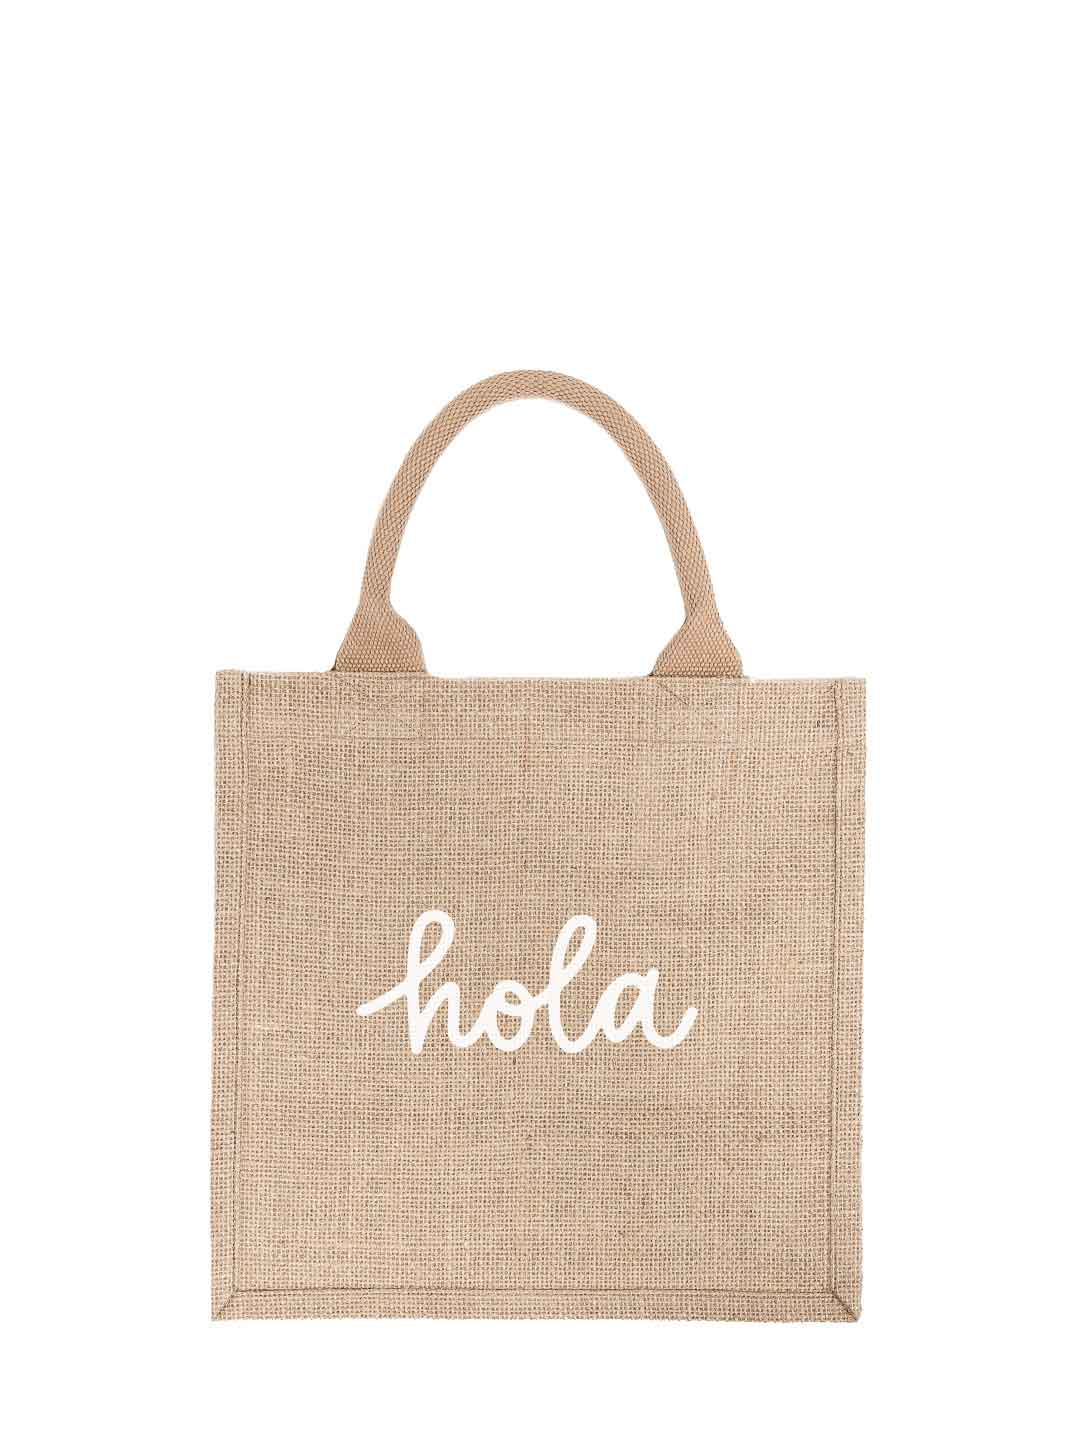 Large Hola Reusable Gift Tote In White Font | The Little Market